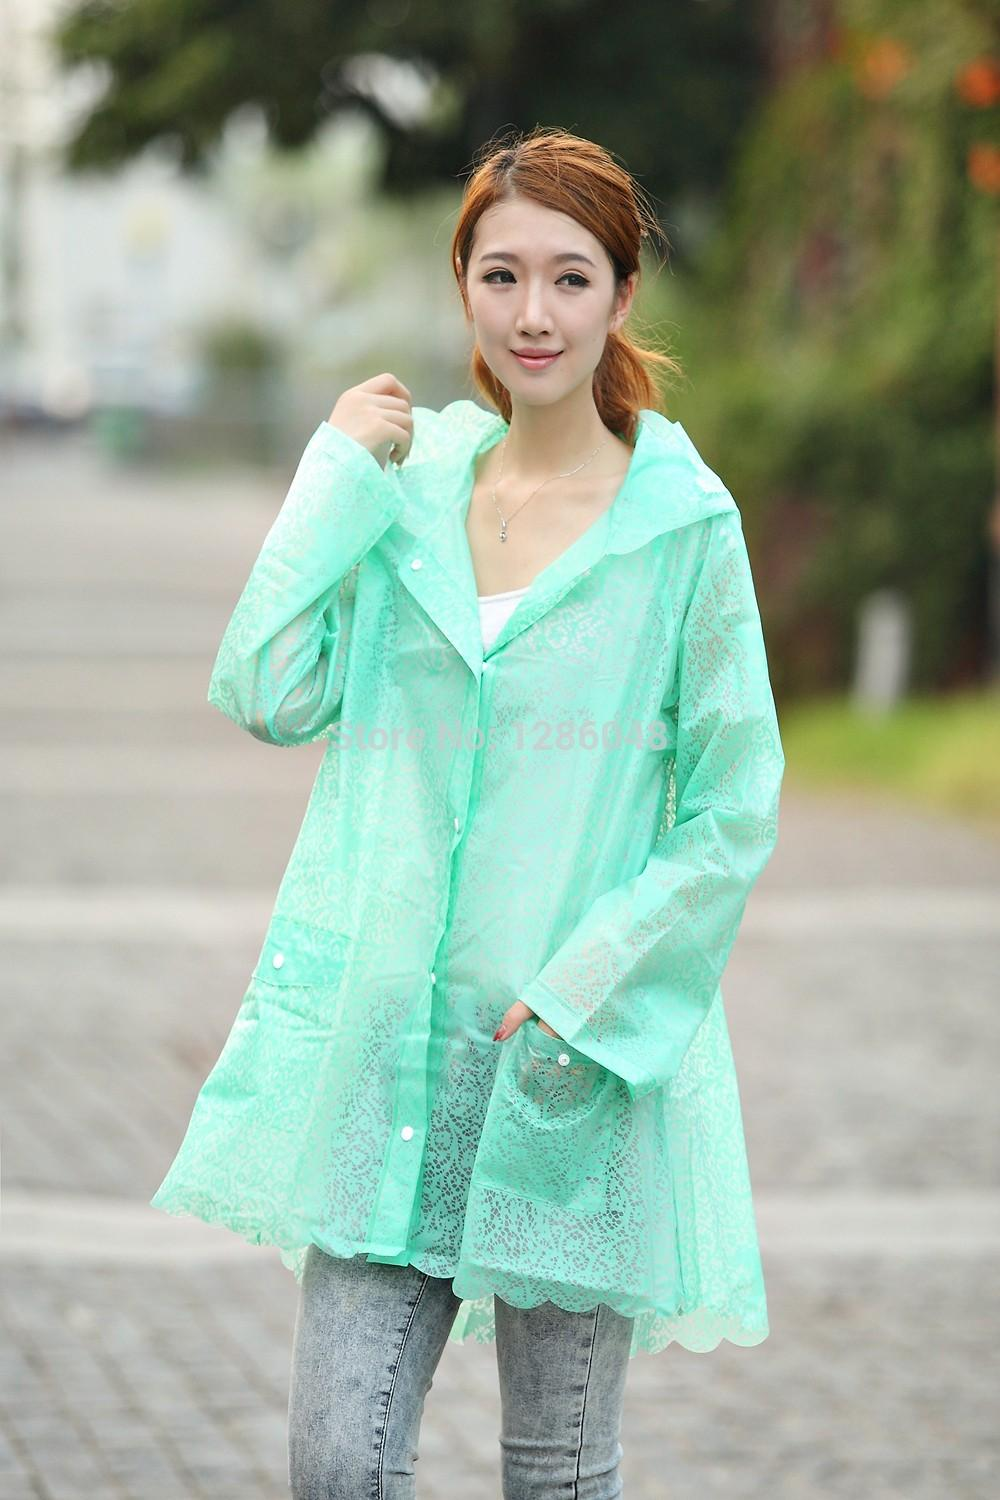 2019 Fashion Lace Women S Raincoat Outdoor Tour Rain Jacket Waterproof Four  Colors Available From Georgen 18bba511b